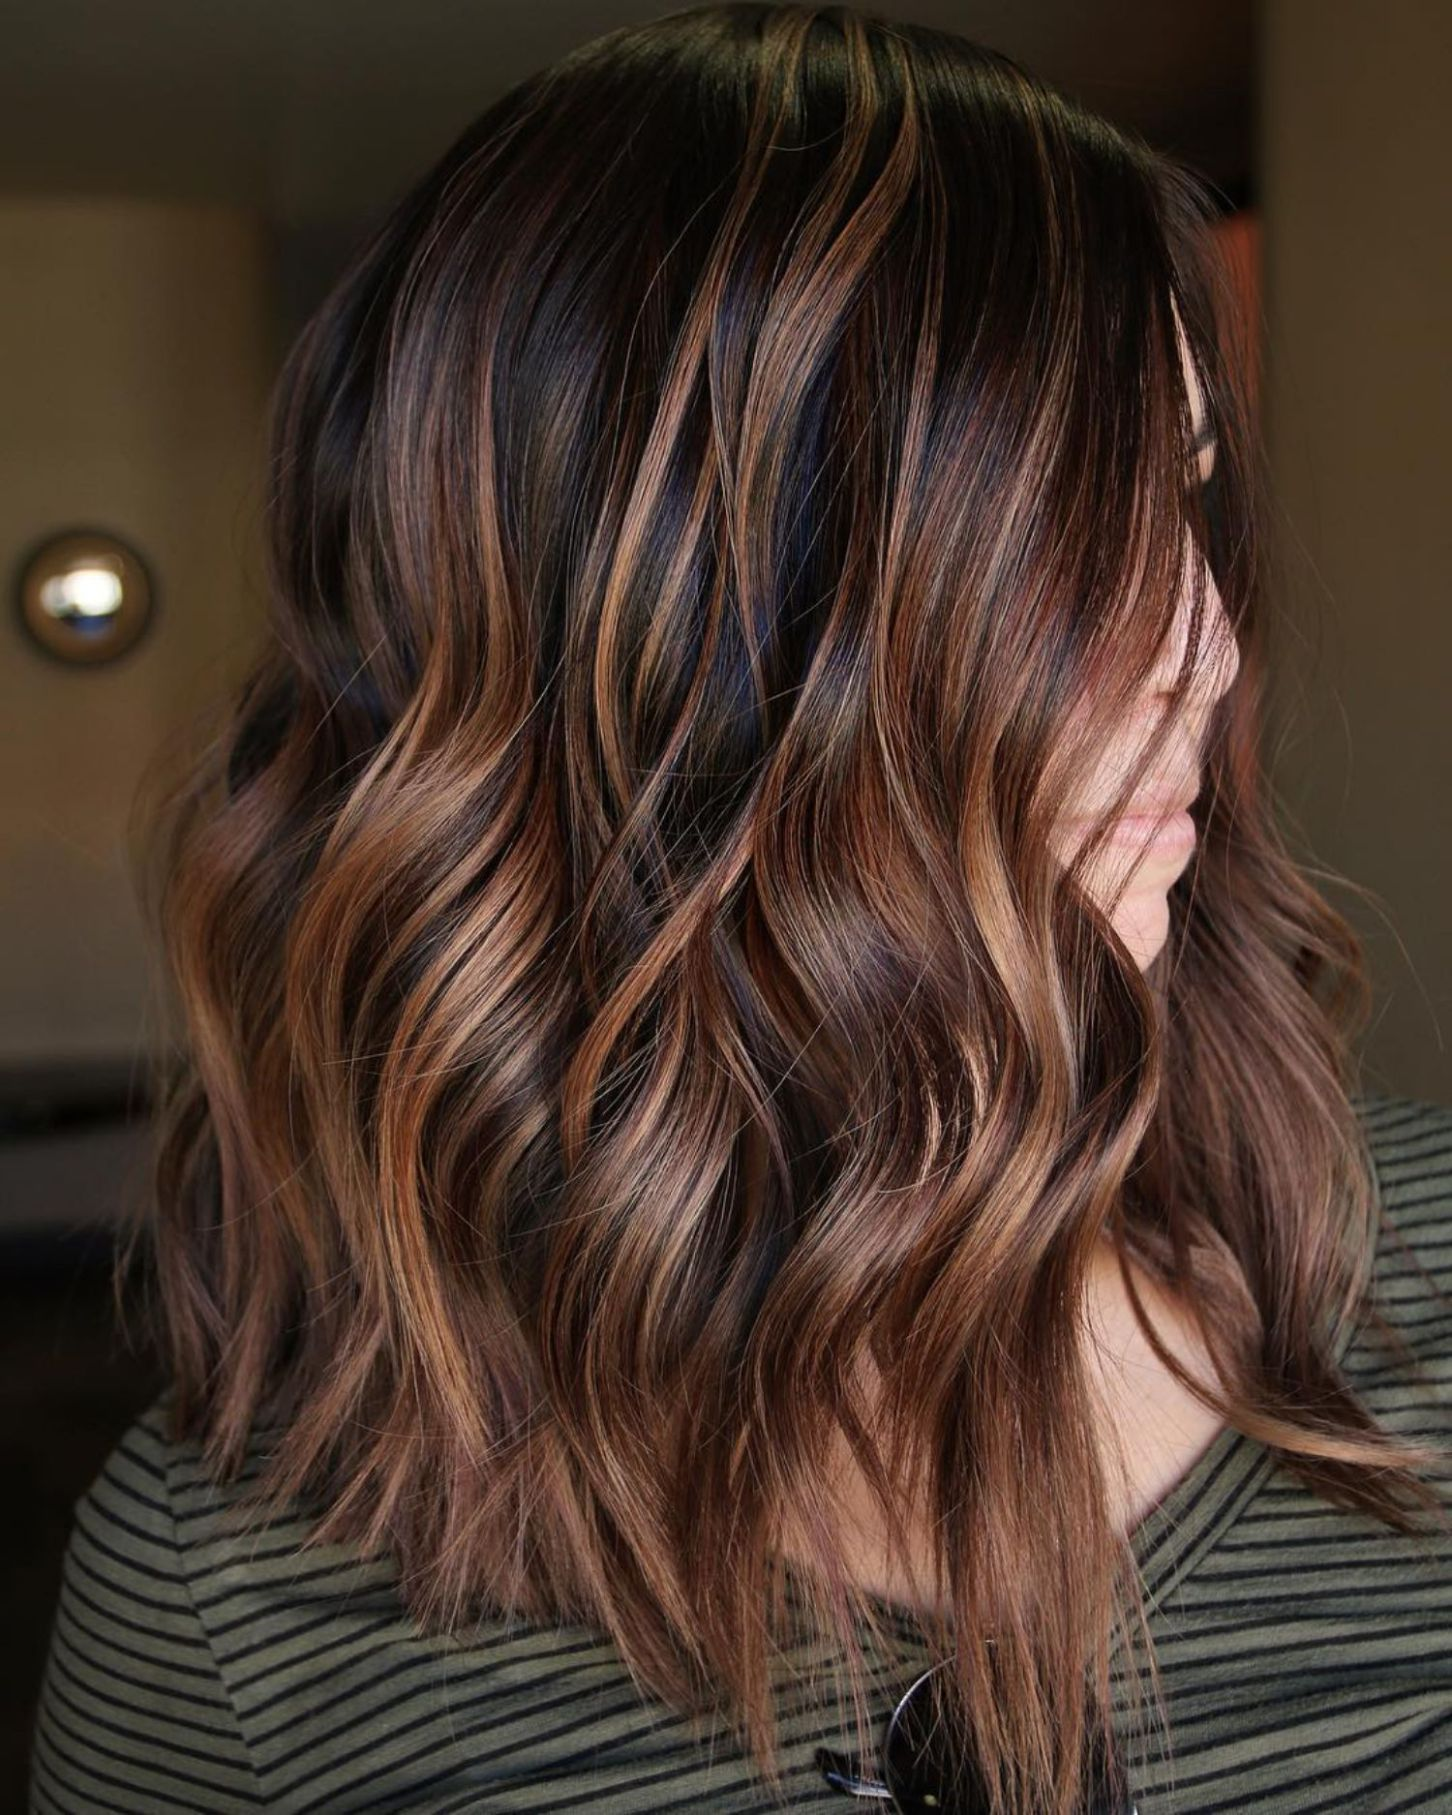 60 Looks With Caramel Highlights On Brown And Dark Brown Hair Hair